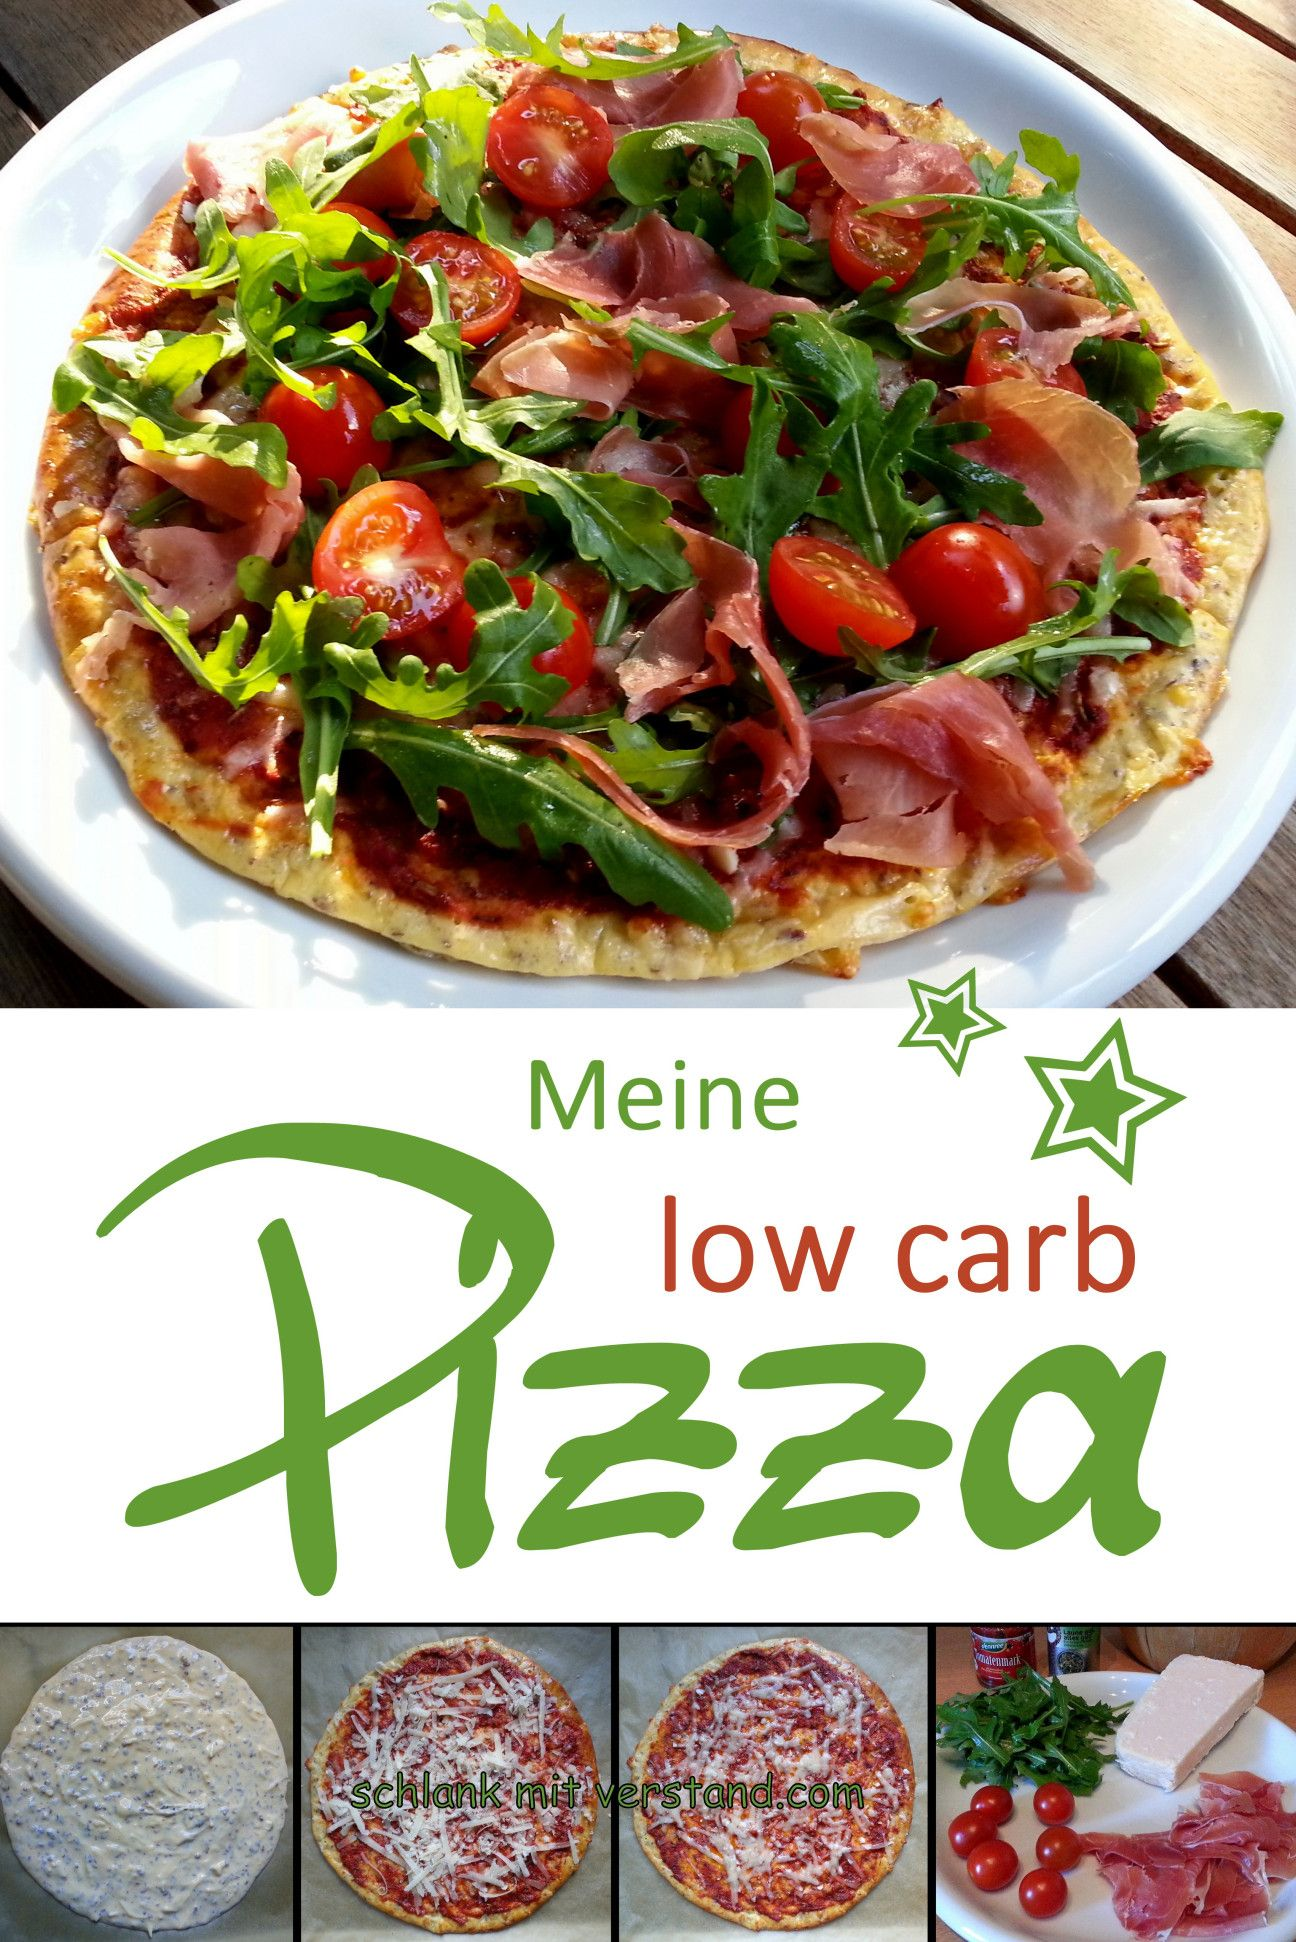 Photo of low carb pizza with parma ham and arugula